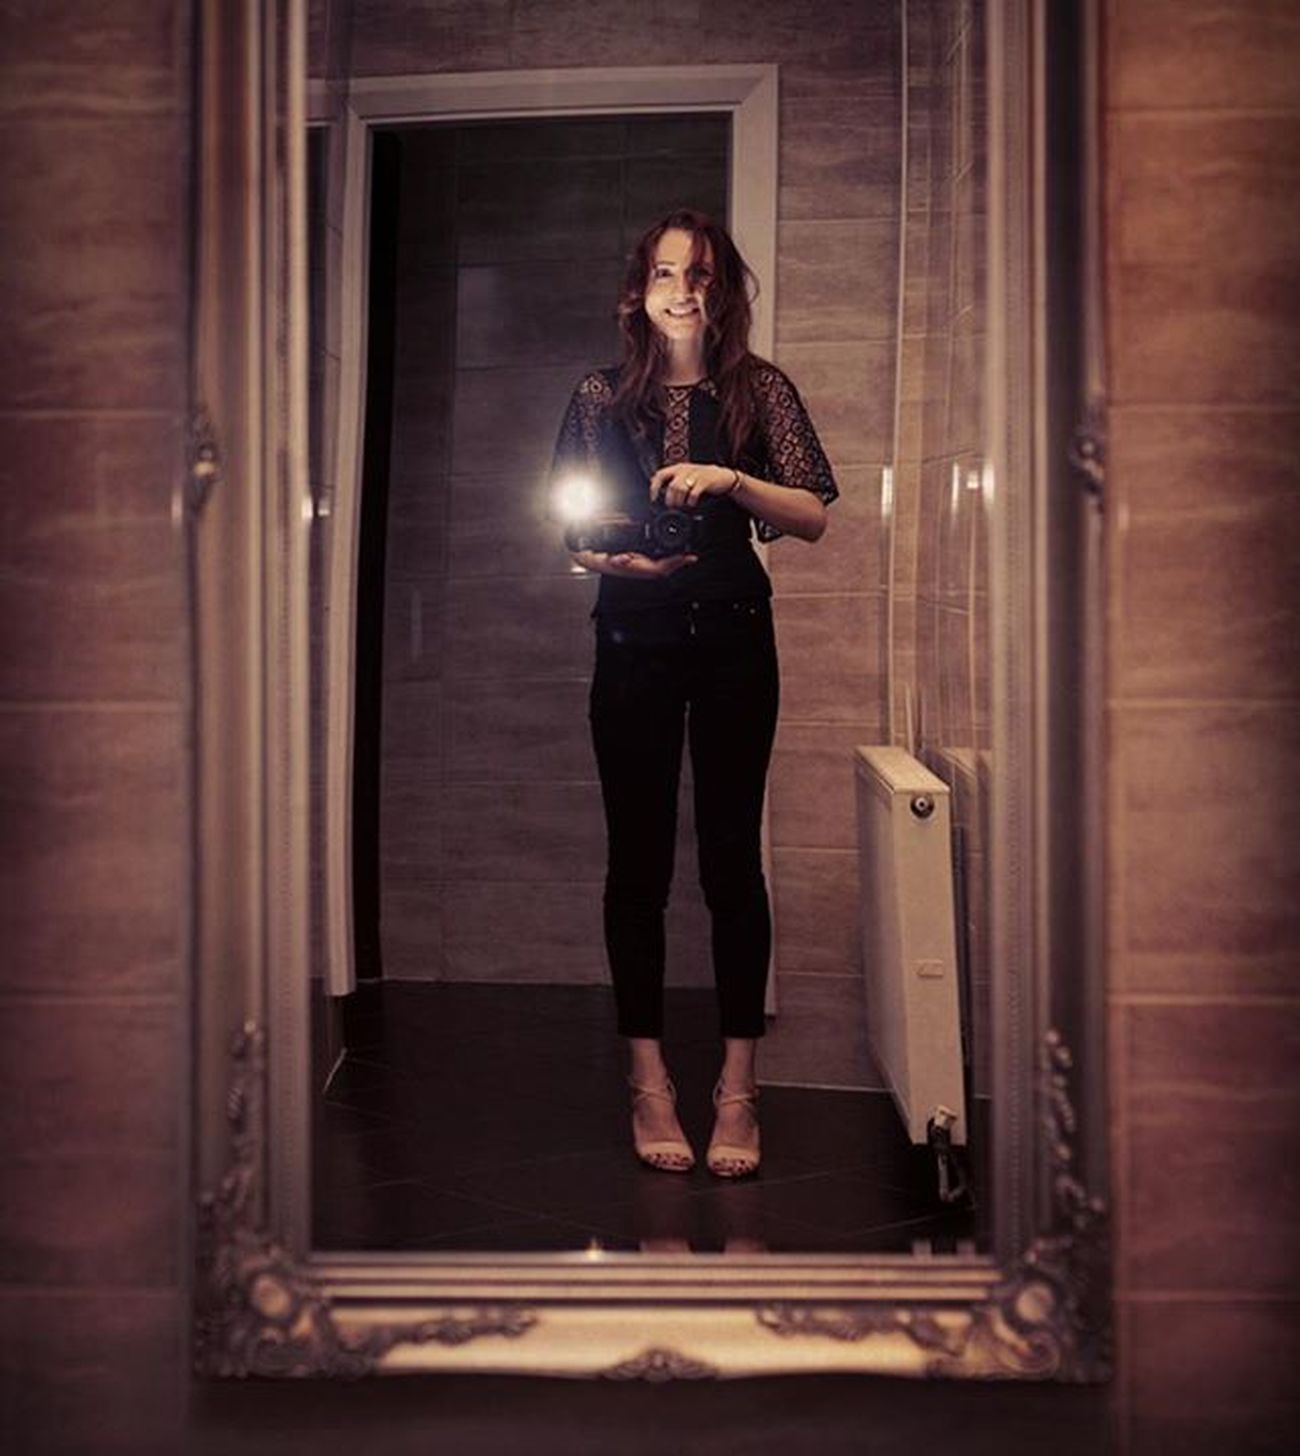 Mirror selfie it's not my style but sometimes I do it😂😂😂 Photography Artist Selfie Photography London Love Lifeisgood Photographerlife Romantic Sonya7m2 Sonya7 Zeiss Sony MyArt Vintage Old Love Look